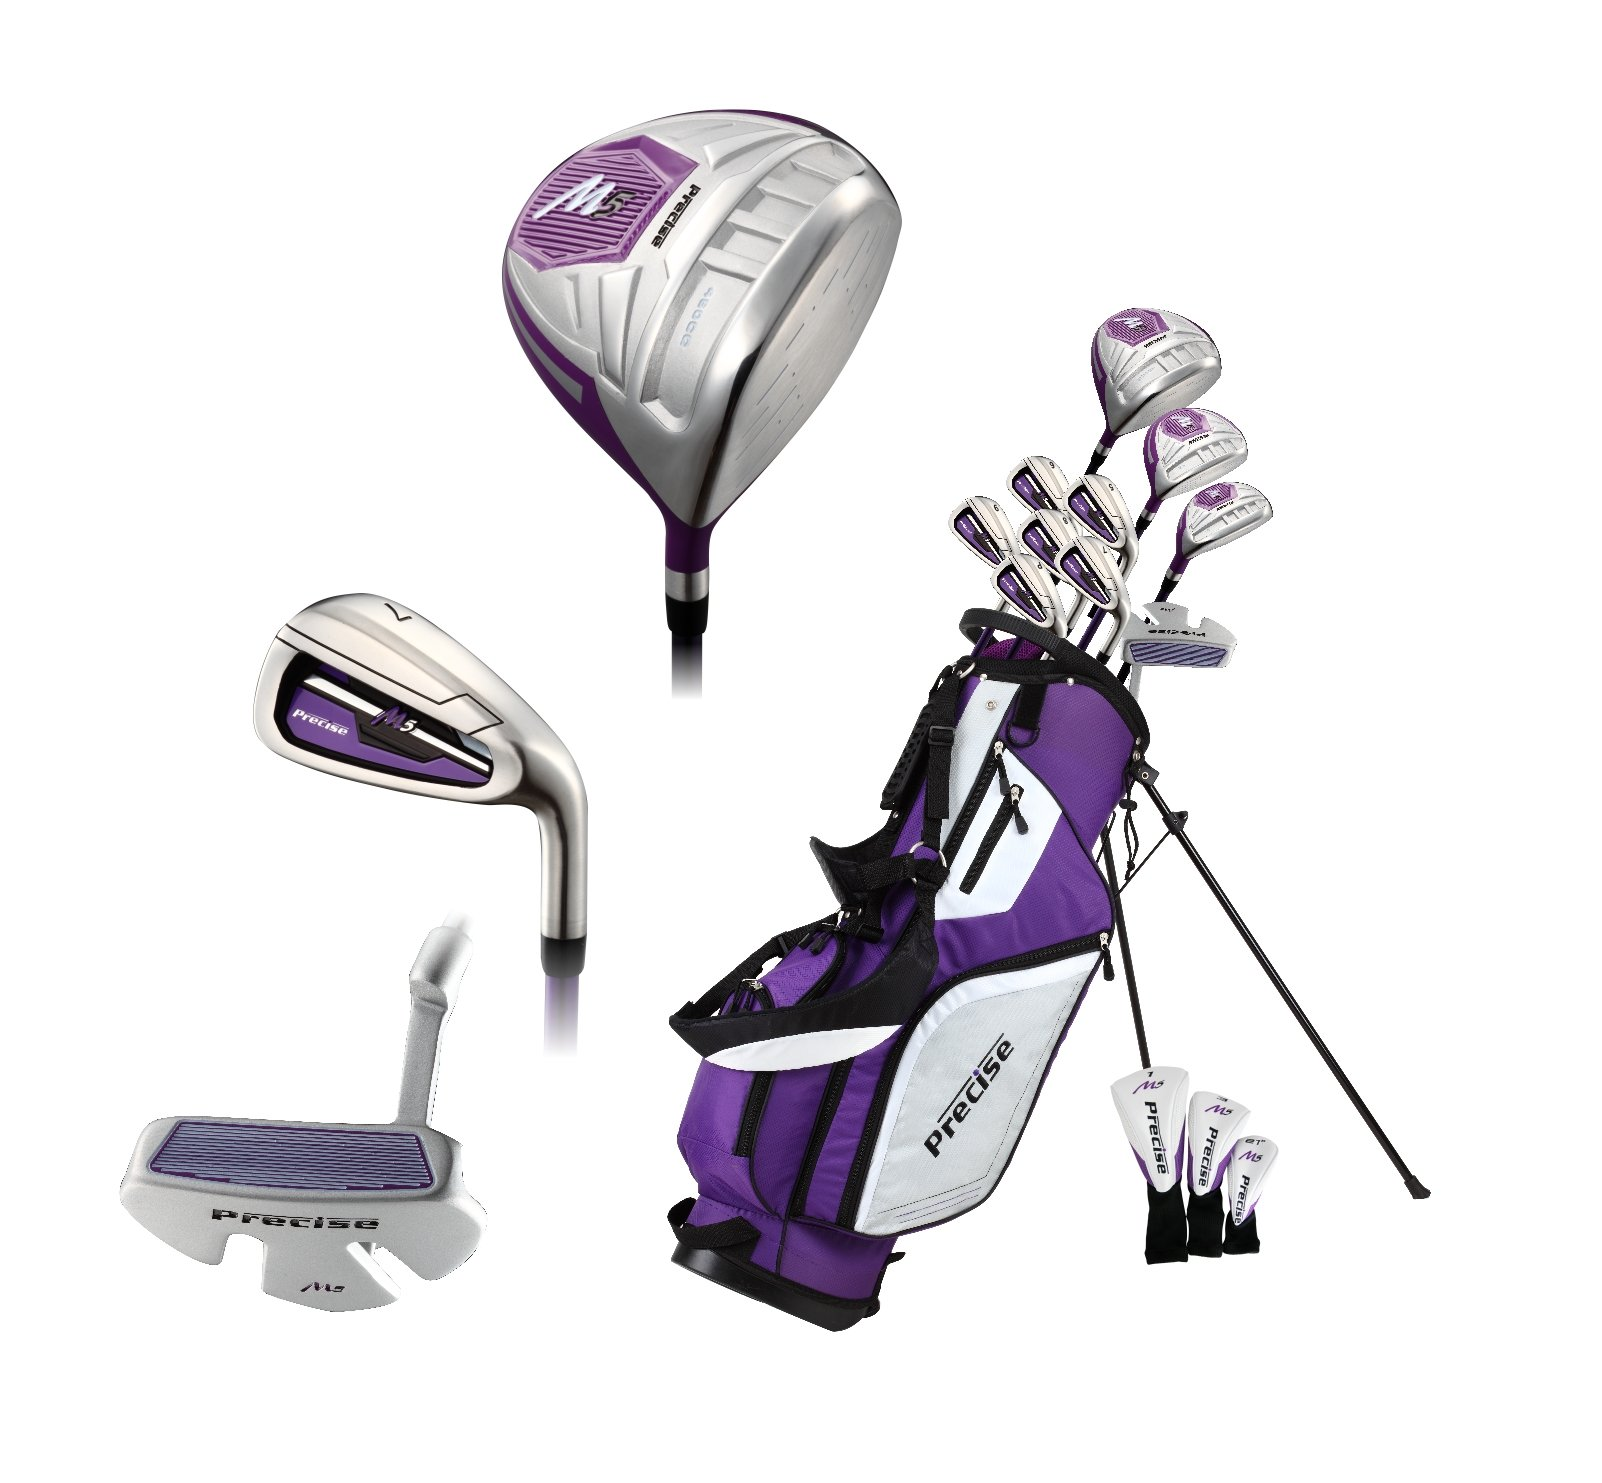 Precise M5 Ladies Womens Complete Right Handed Golf Clubs Set Includes Titanium Driver, S.S. Fairway, S.S. Hybrid, S.S. 5-PW Irons, Putter, Stand Bag, 3 H/C's Purple (Right Hand Petite Size -1'') by PreciseGolf Co. (Image #9)